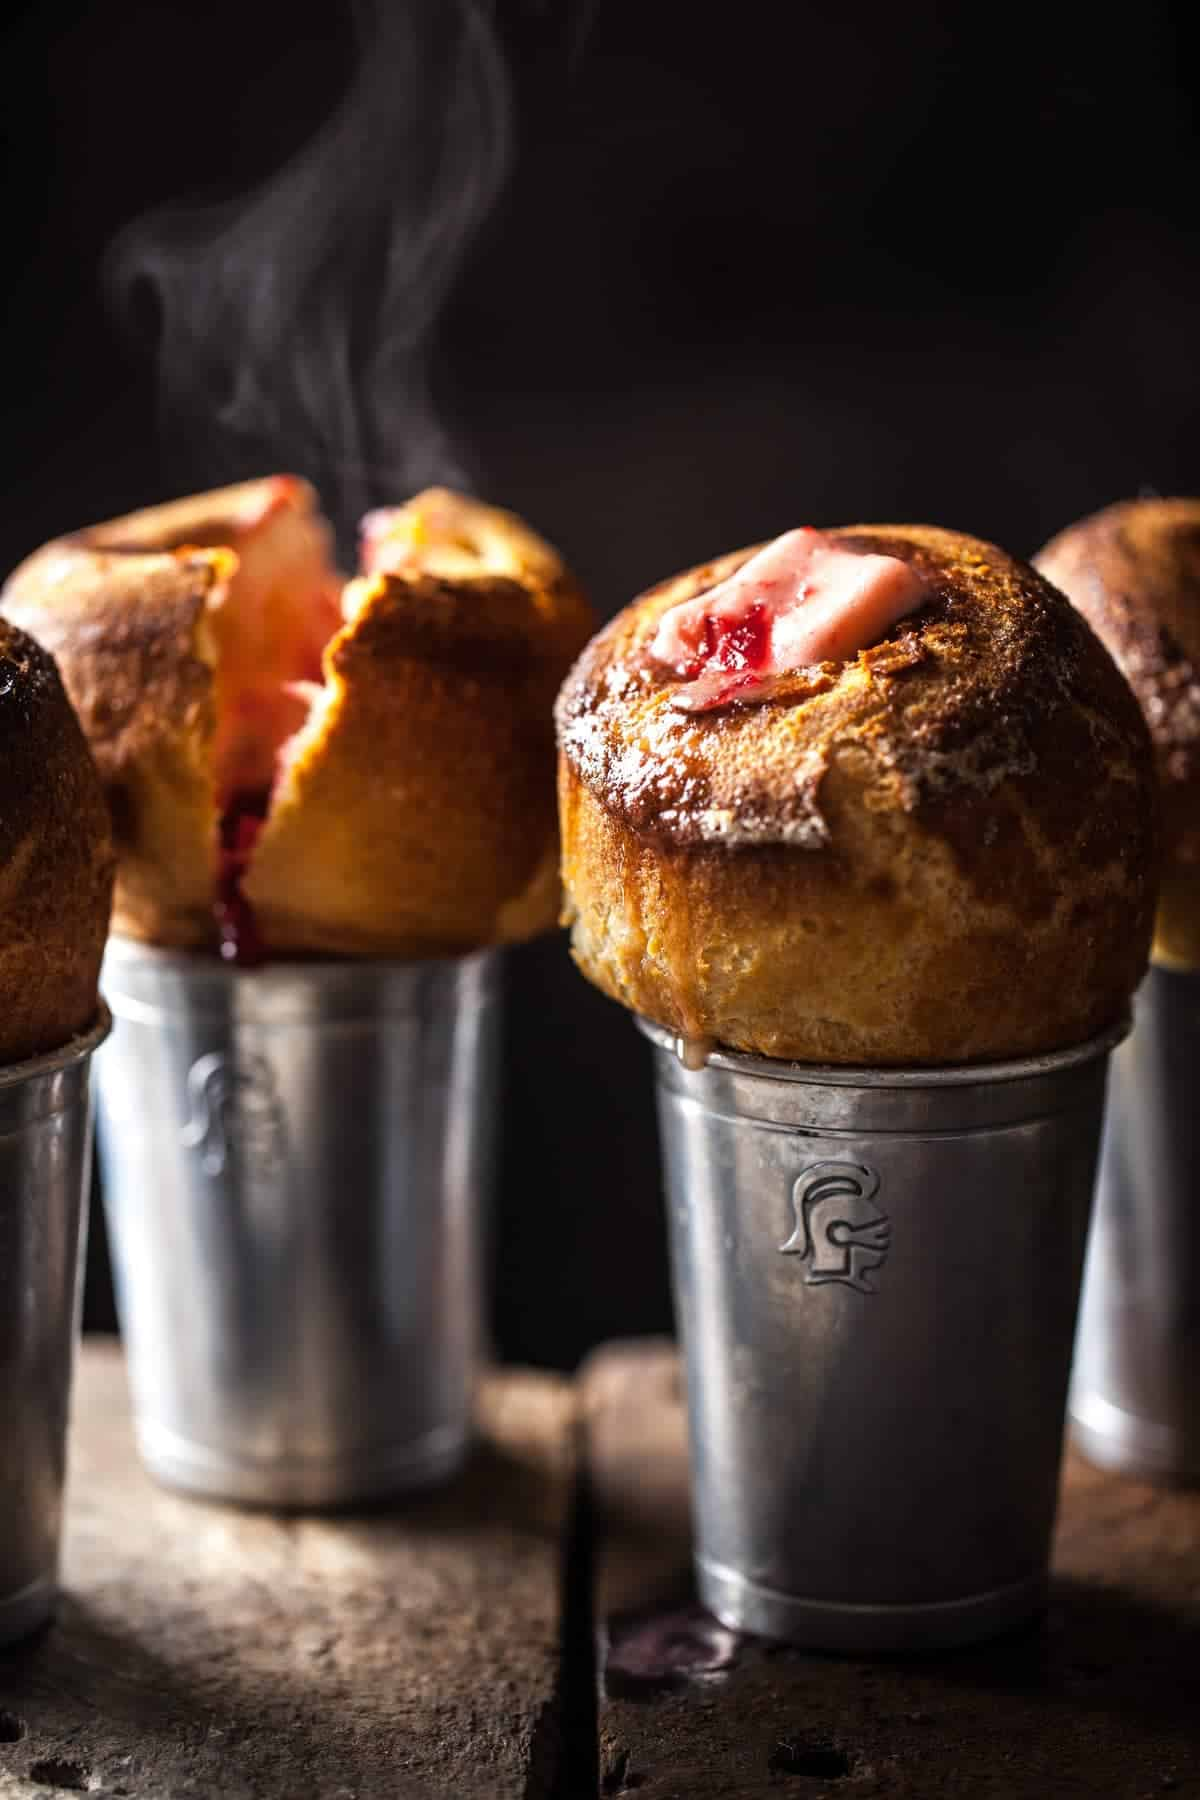 Cranberry Butter Popovers - Little Rusted Ladle - Jena Carlin Photography - King Arthur Flour Limited Usage